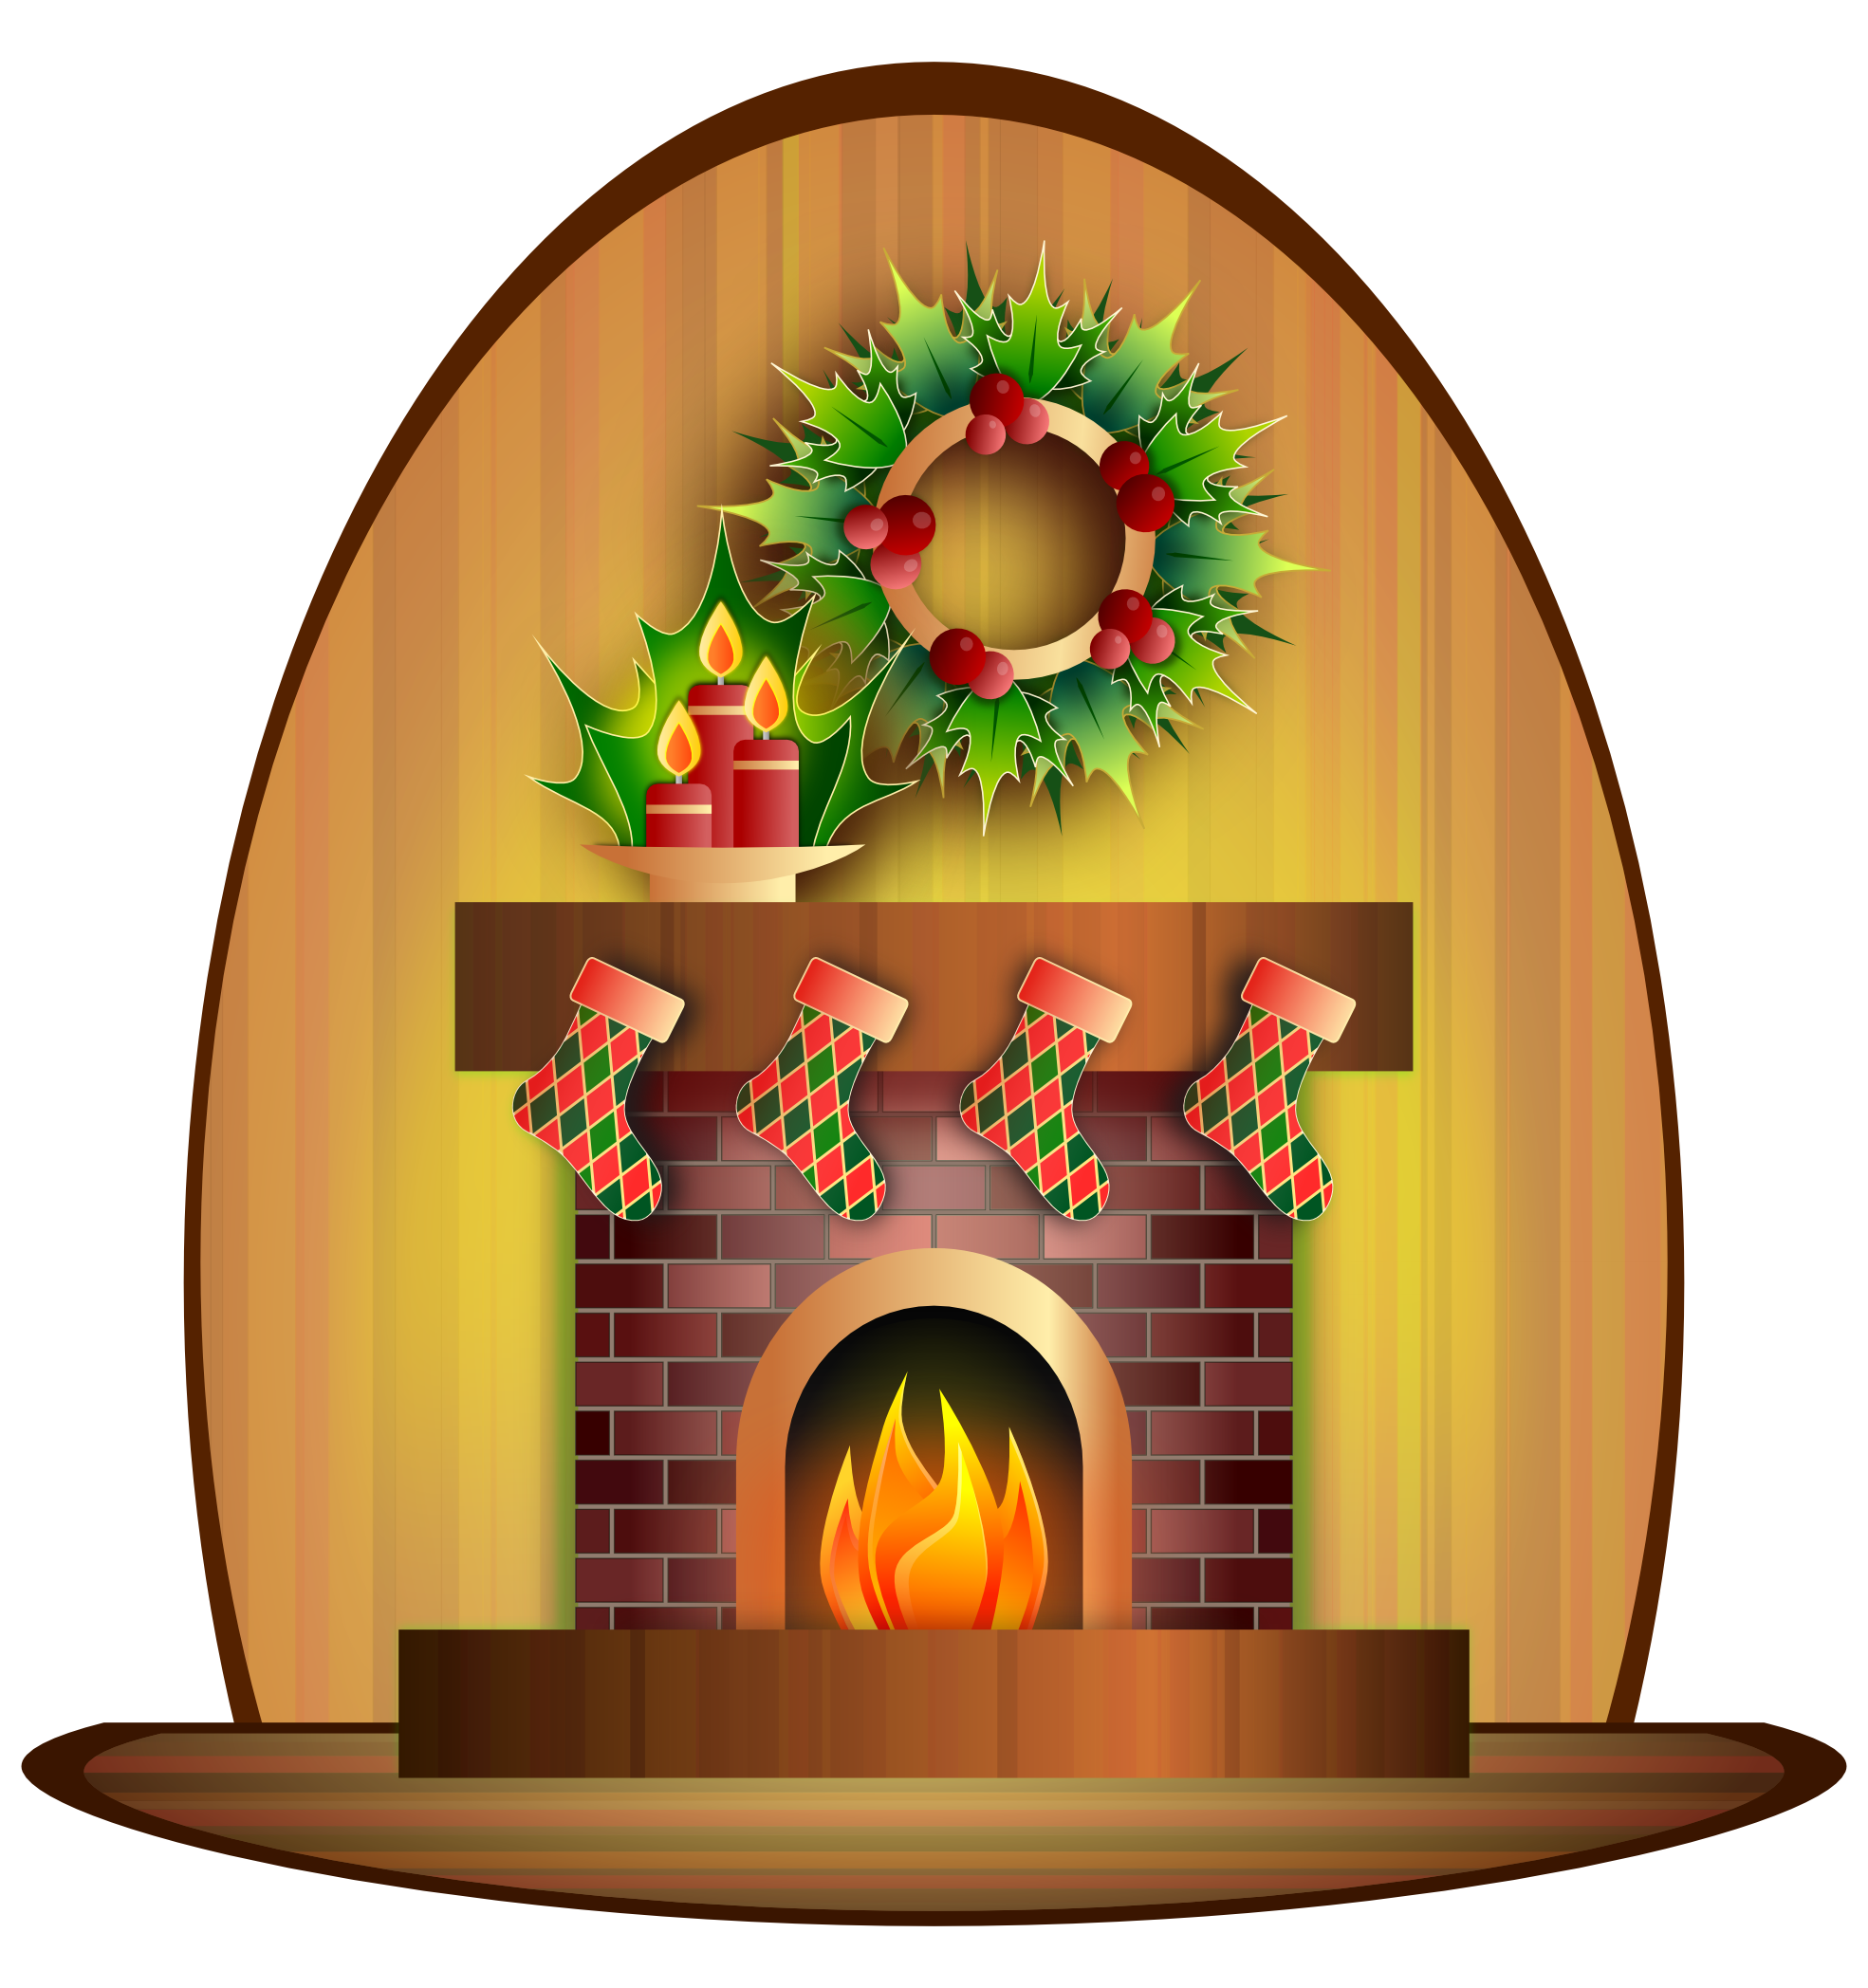 Fireplace 33px Png 2 K  Fireplace 111px Png 16 K  Fireplace 333px Png